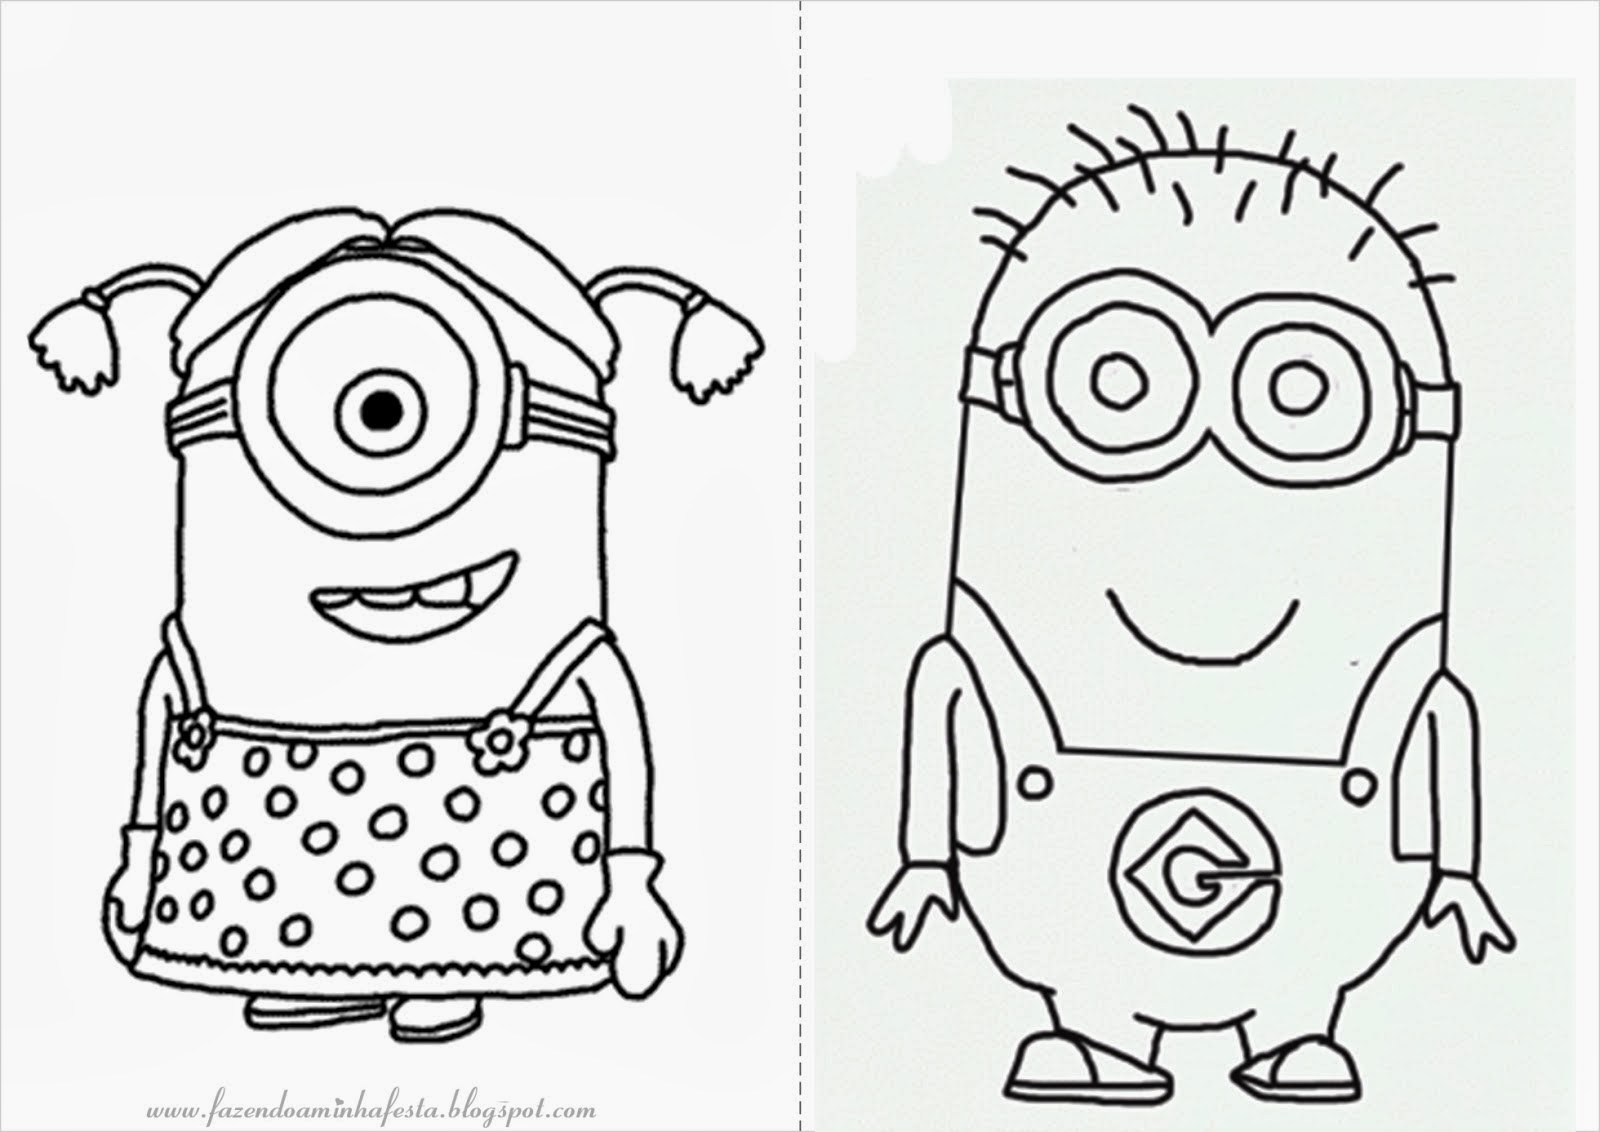 Colorindo E Desenhando: Minions E Personagens Do Meu